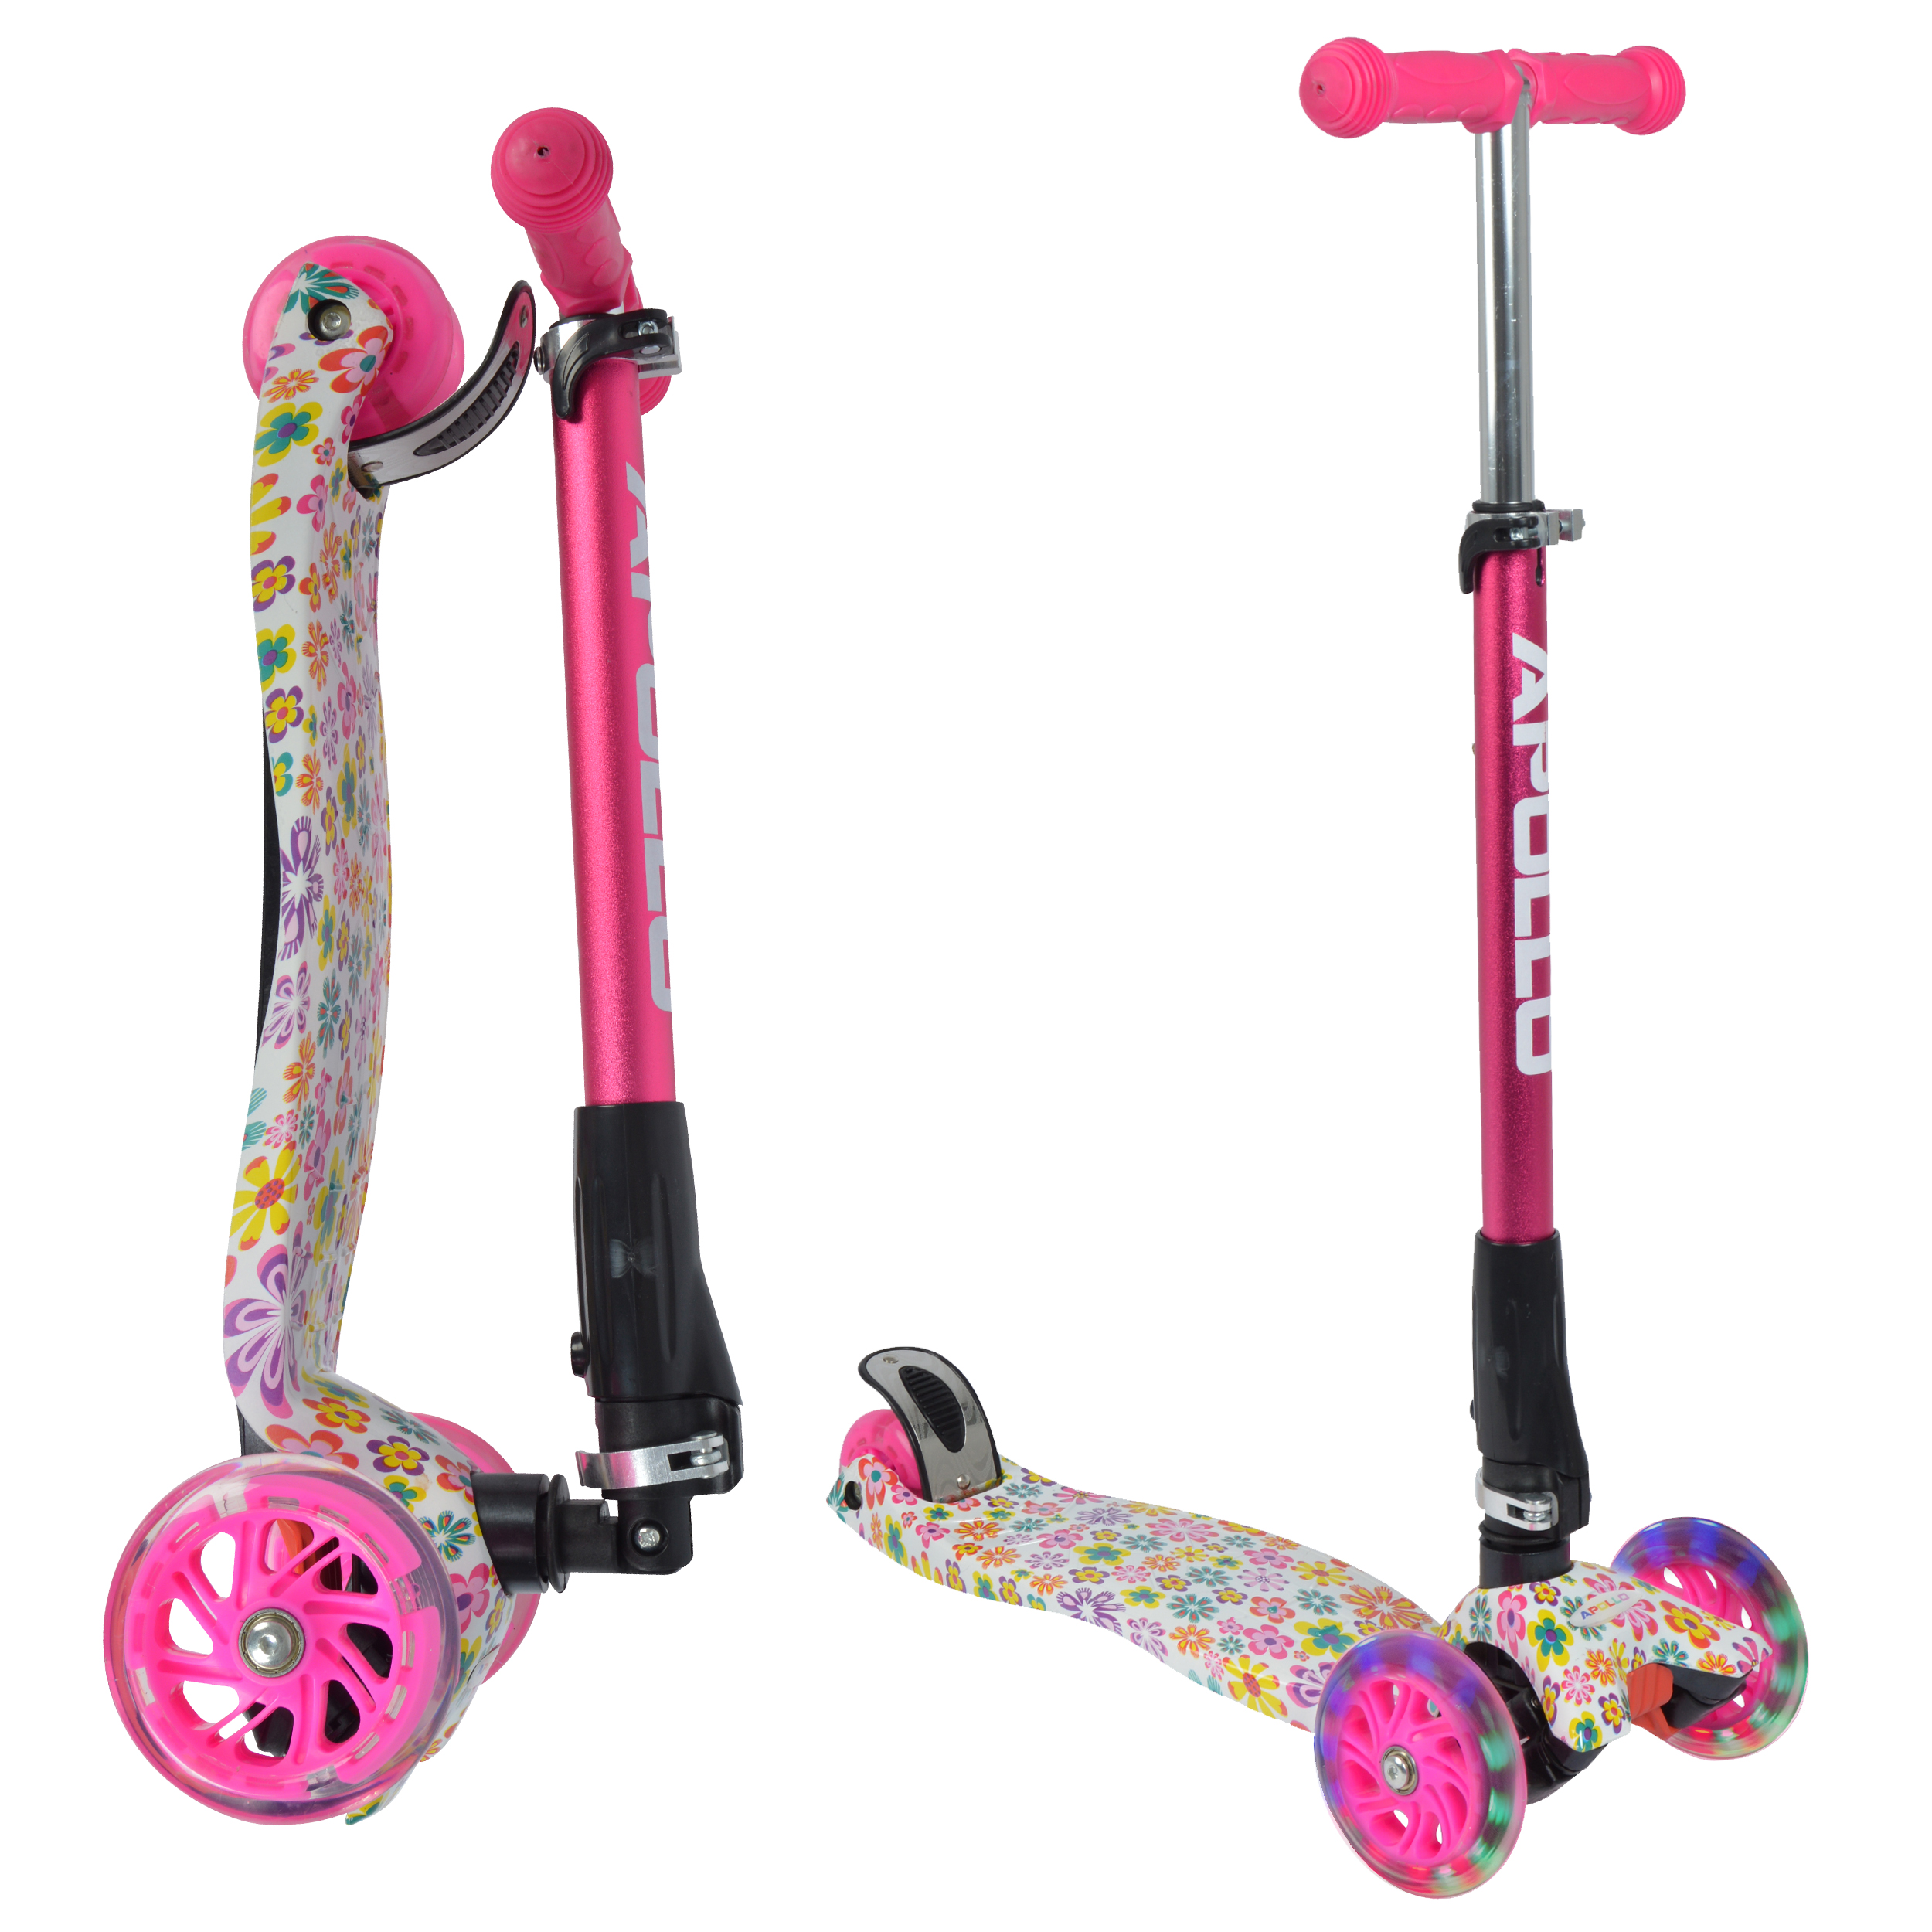 Kinderroller - Kids Whiz - Pink Flower